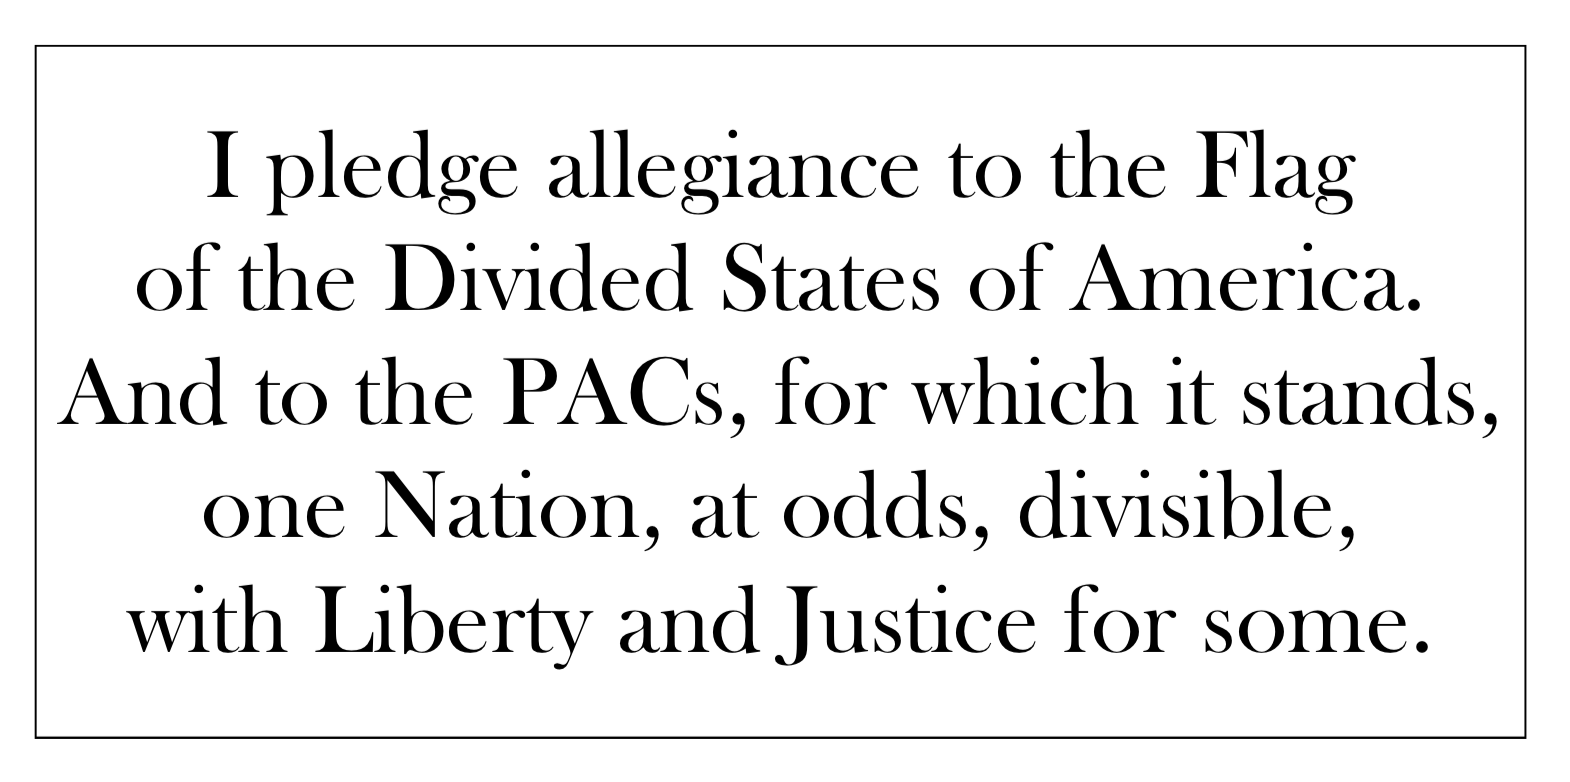 RT @neiltyson: If the Pledge of Allegiance told the truth: http://t.co/Iy5zoyMOls